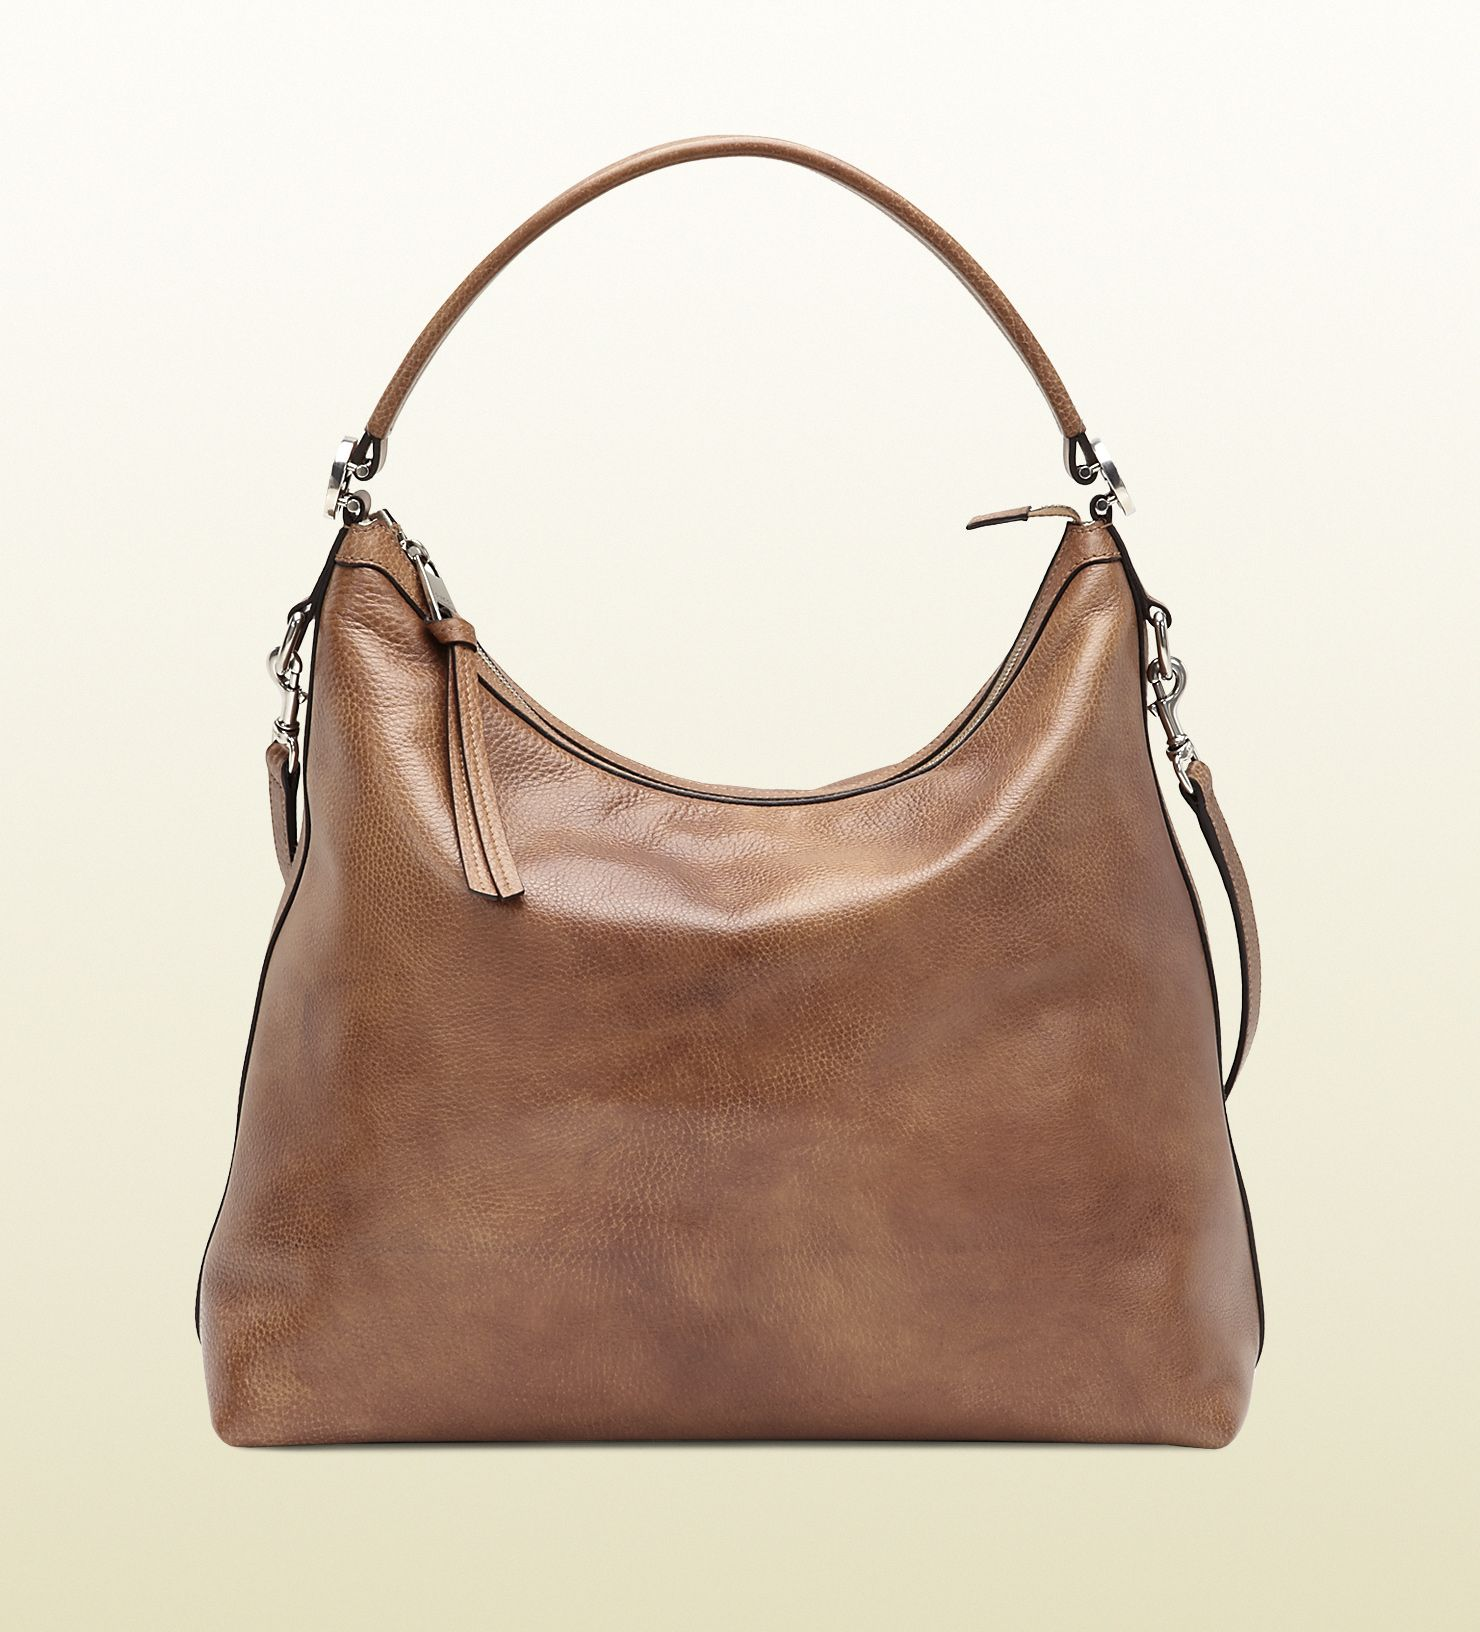 Gucci bag: miss GG cuir leather hobo